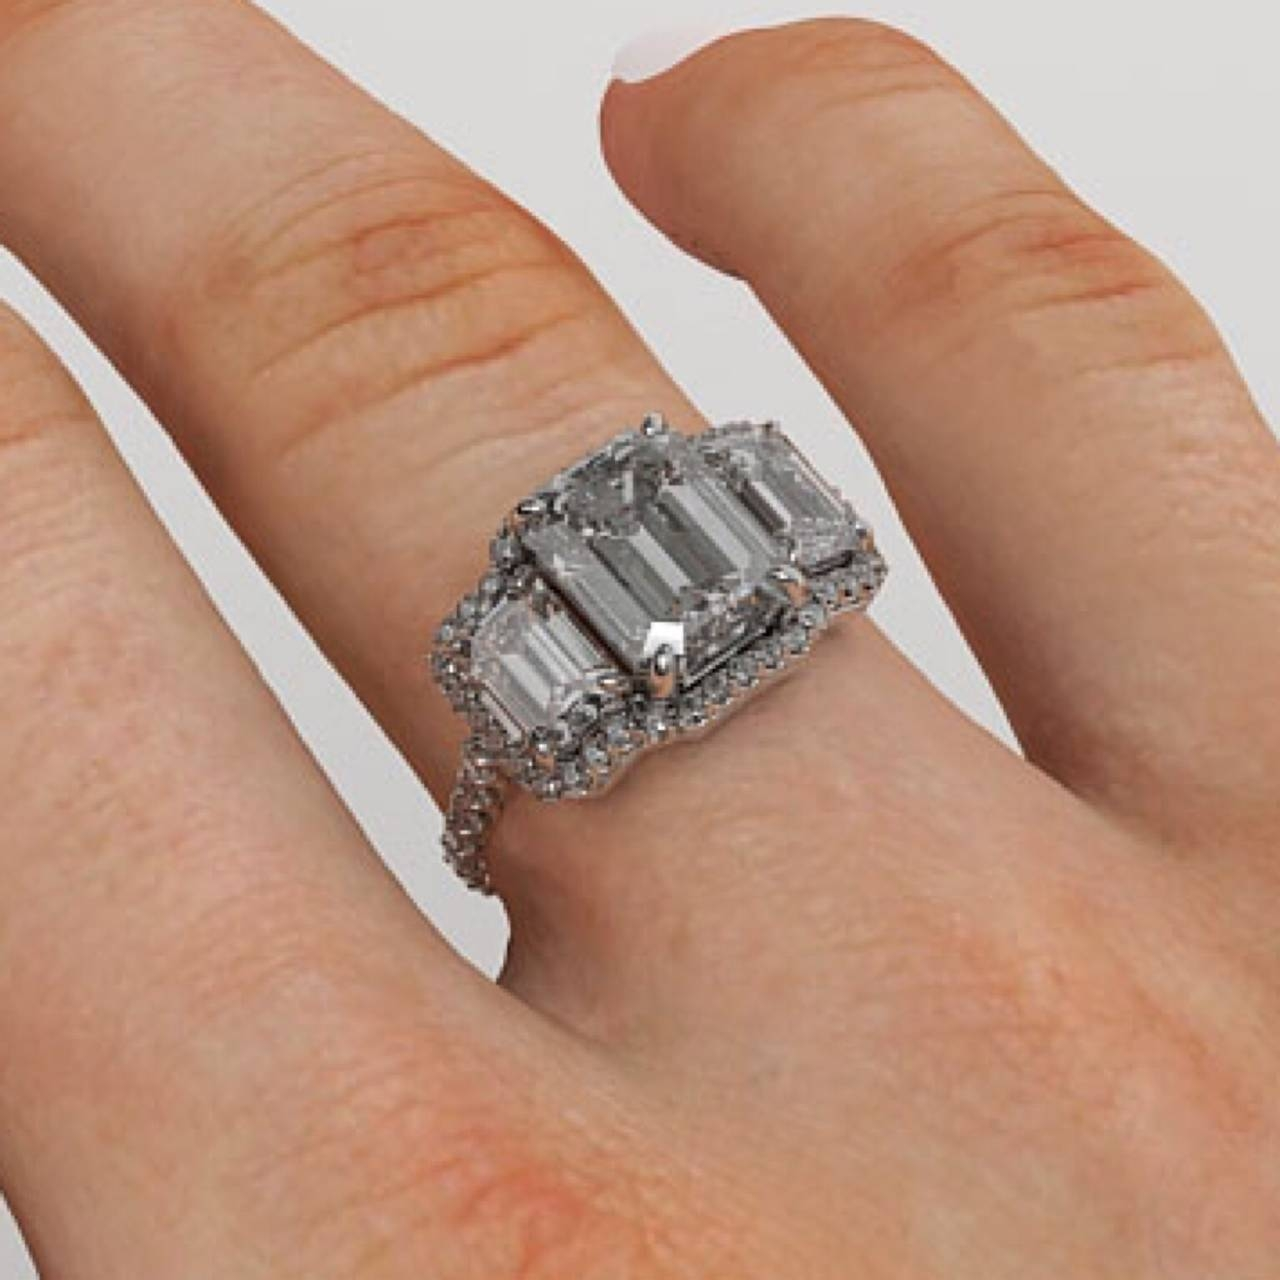 Free Diamond Rings. 3 Stone Emerald Cut Diamond Engagement Rings Regarding Emerald Cut Three Stone Diamond Engagement Rings (Gallery 5 of 15)